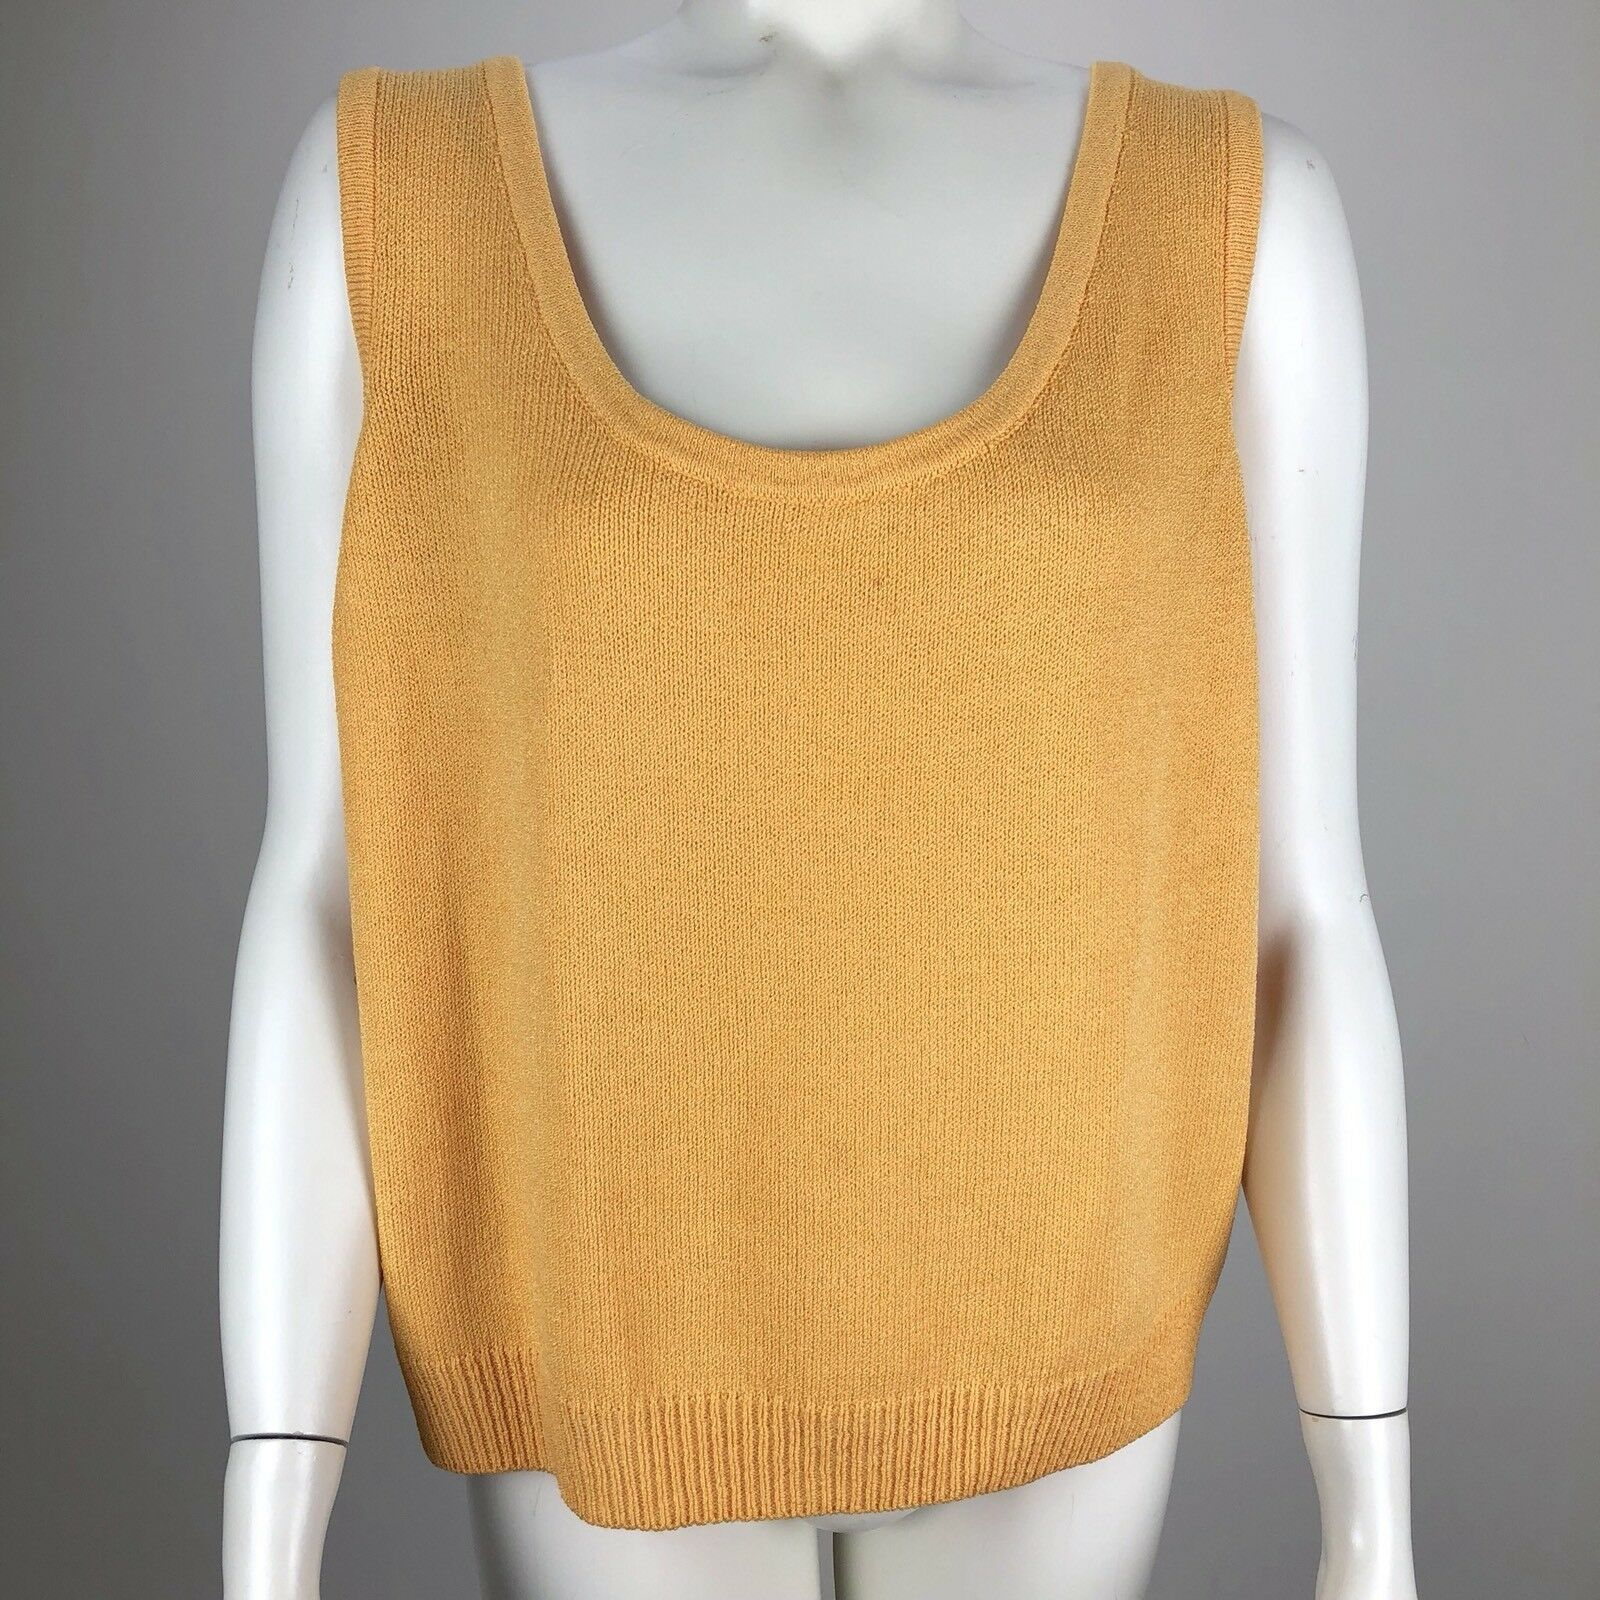 St. John Collection Women's Sleeveless Sweater Knit Tank Top Yellow - Size Med